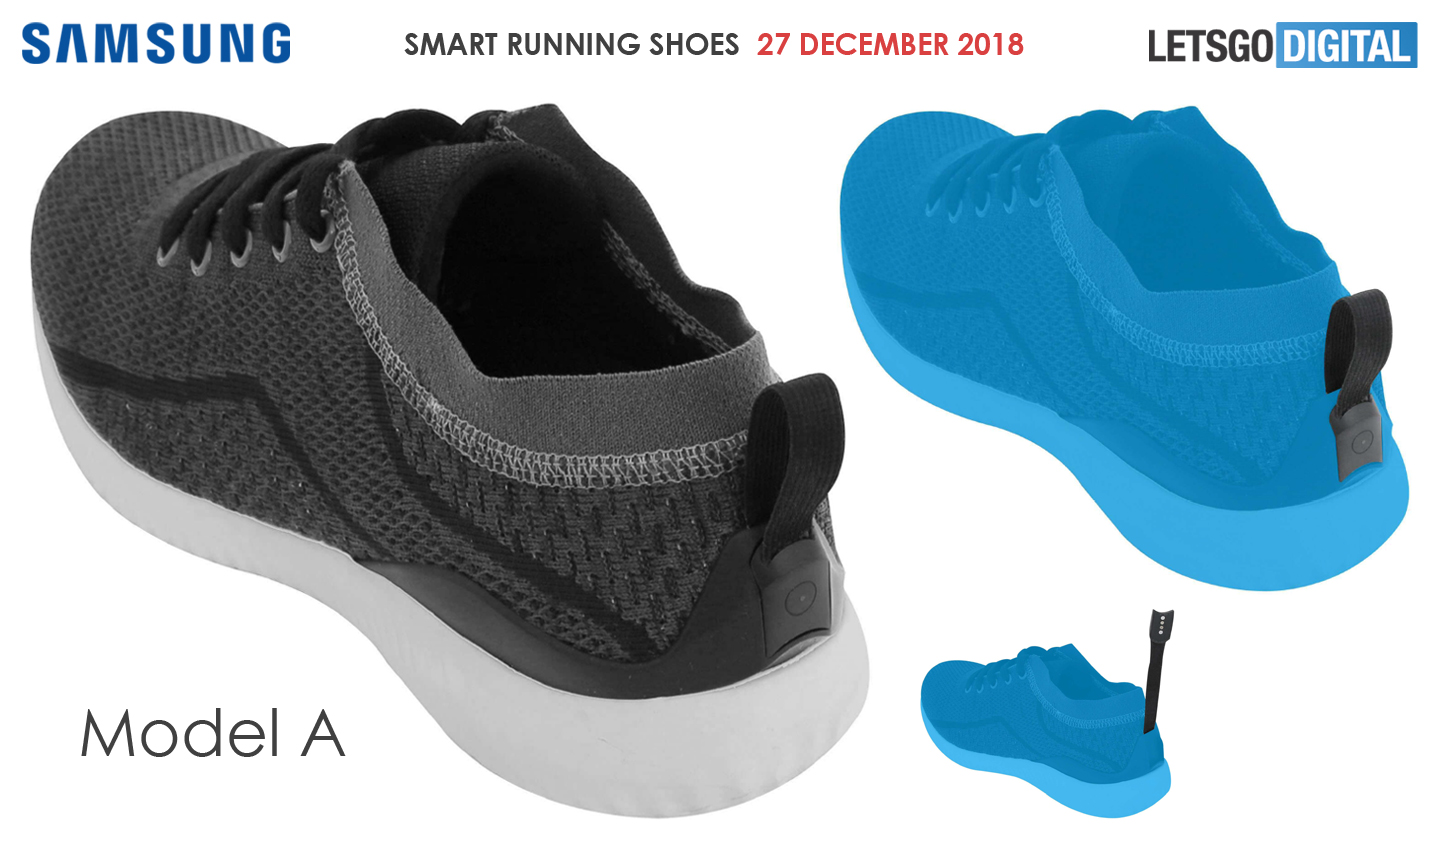 Samsung Smart Running Shoes